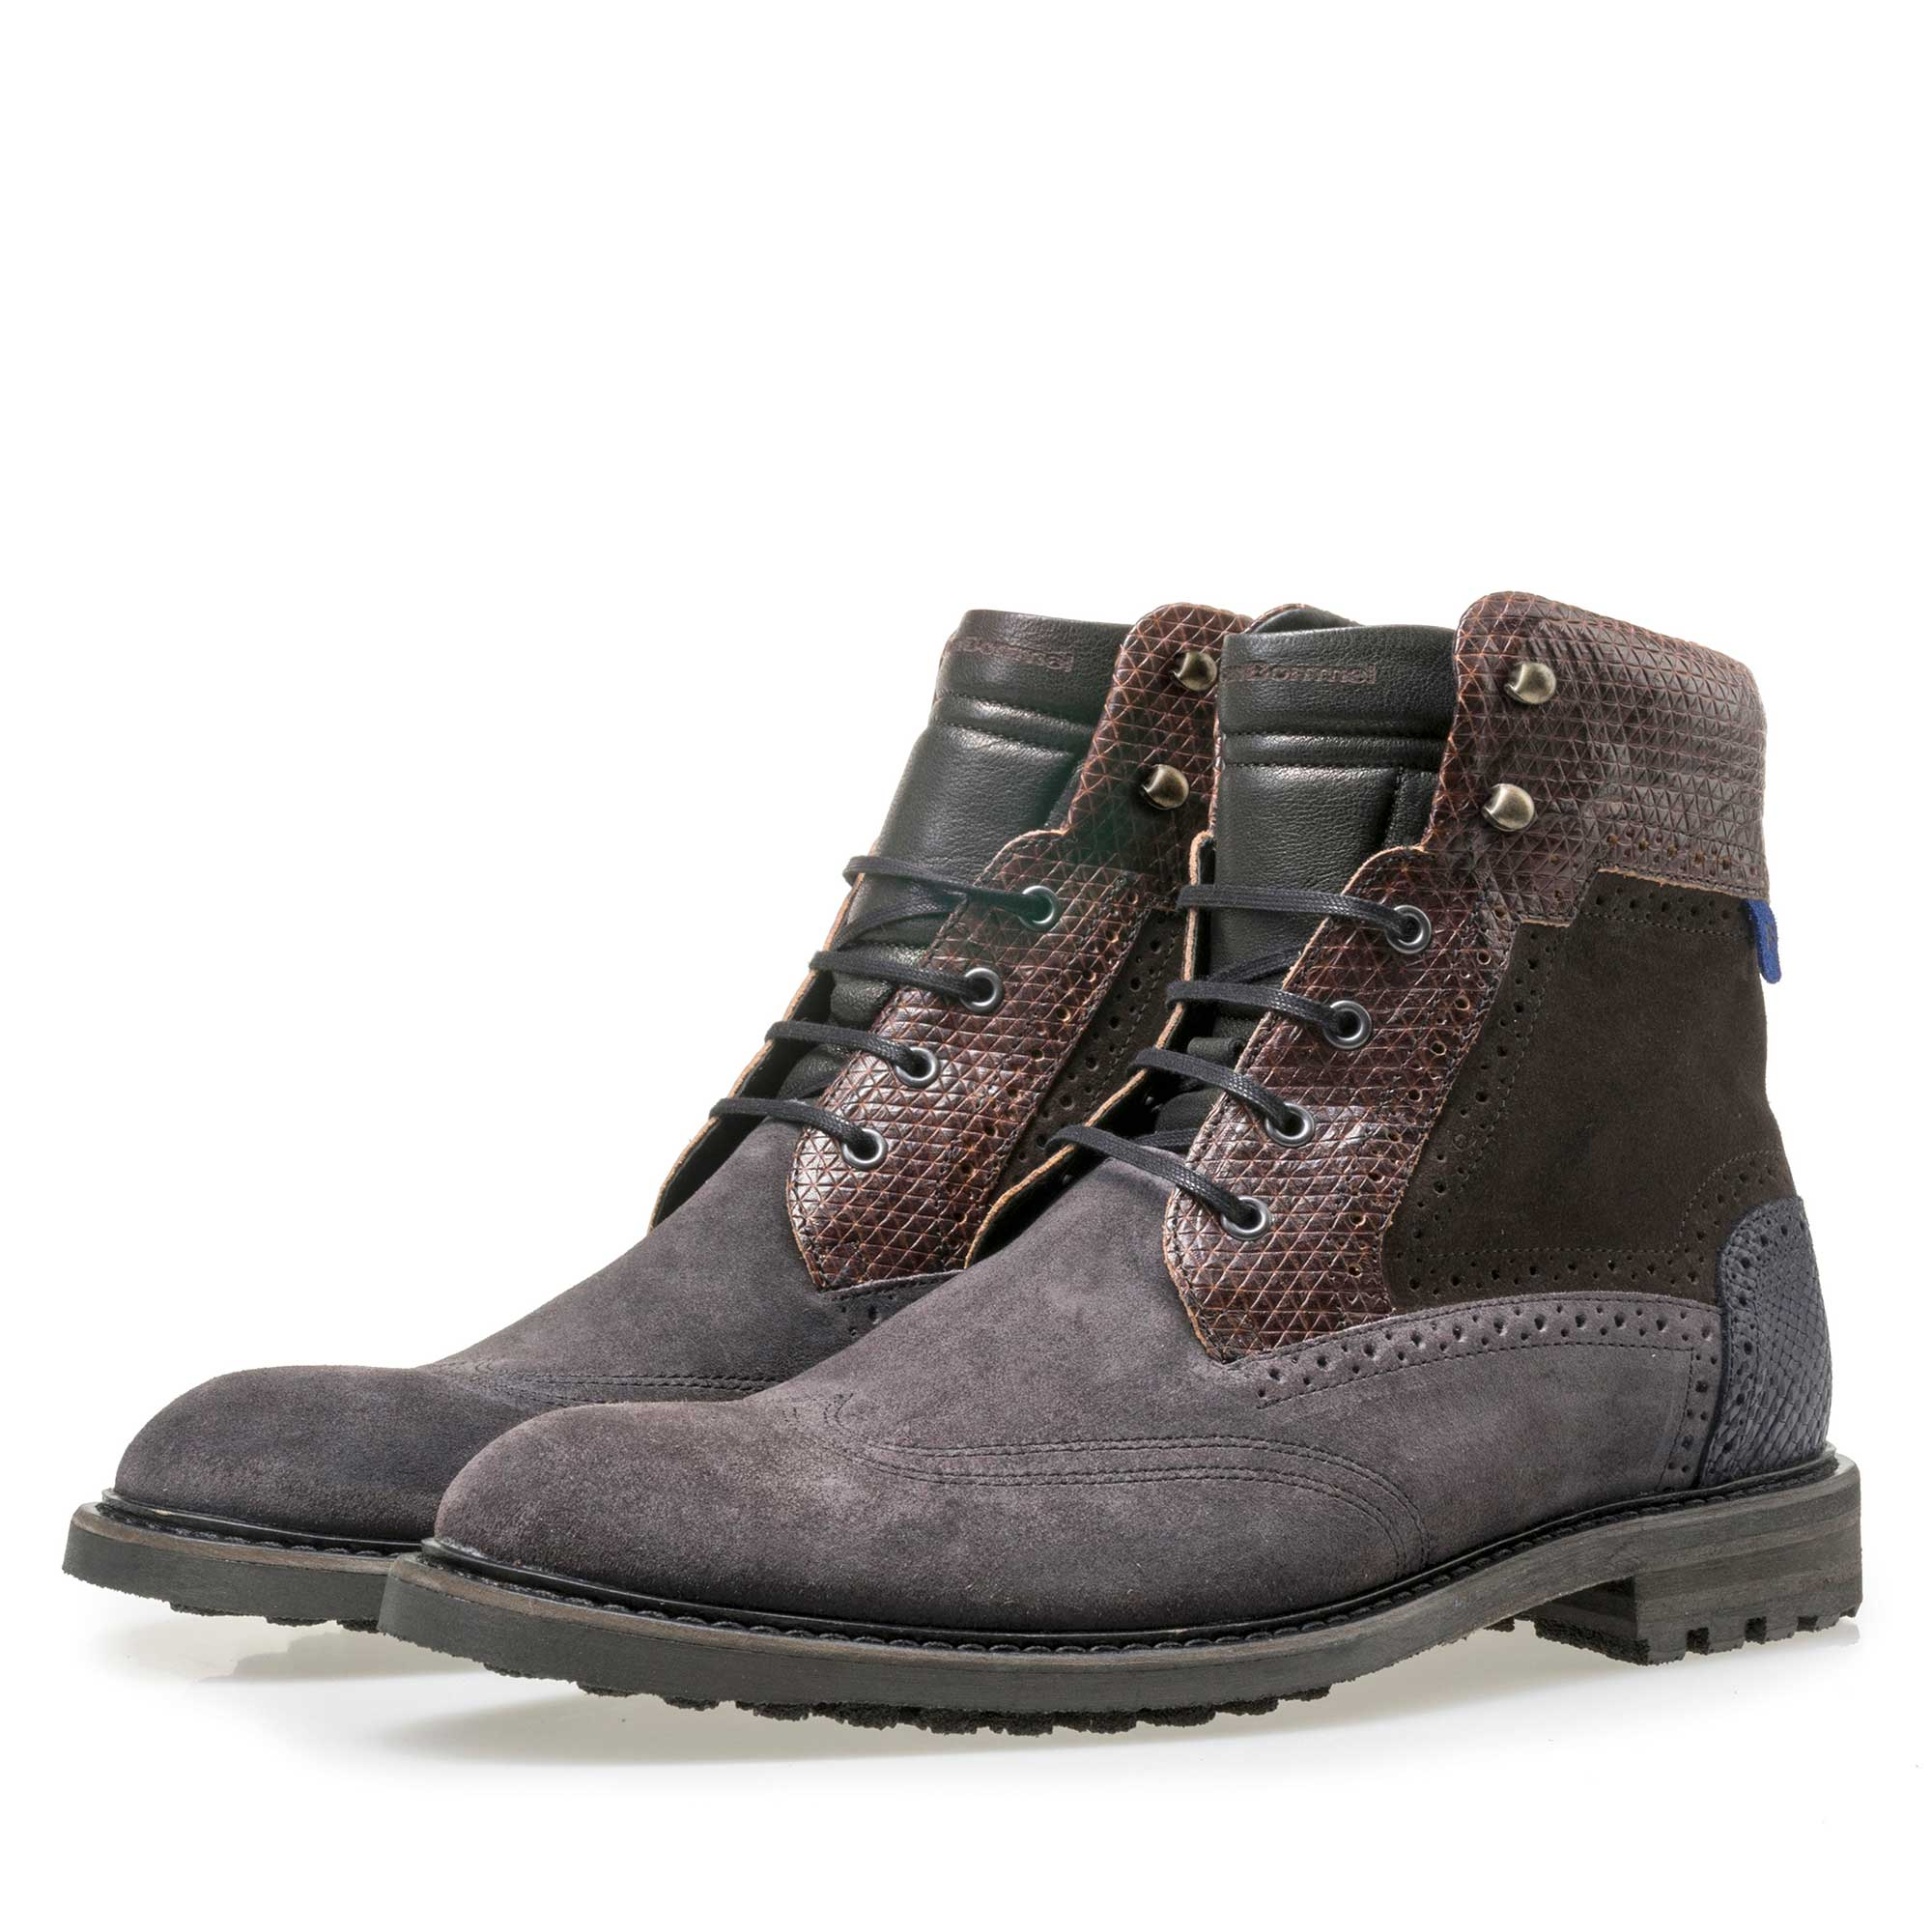 10979/05 - Floris van Bommel dark grey high suede leather lace boot